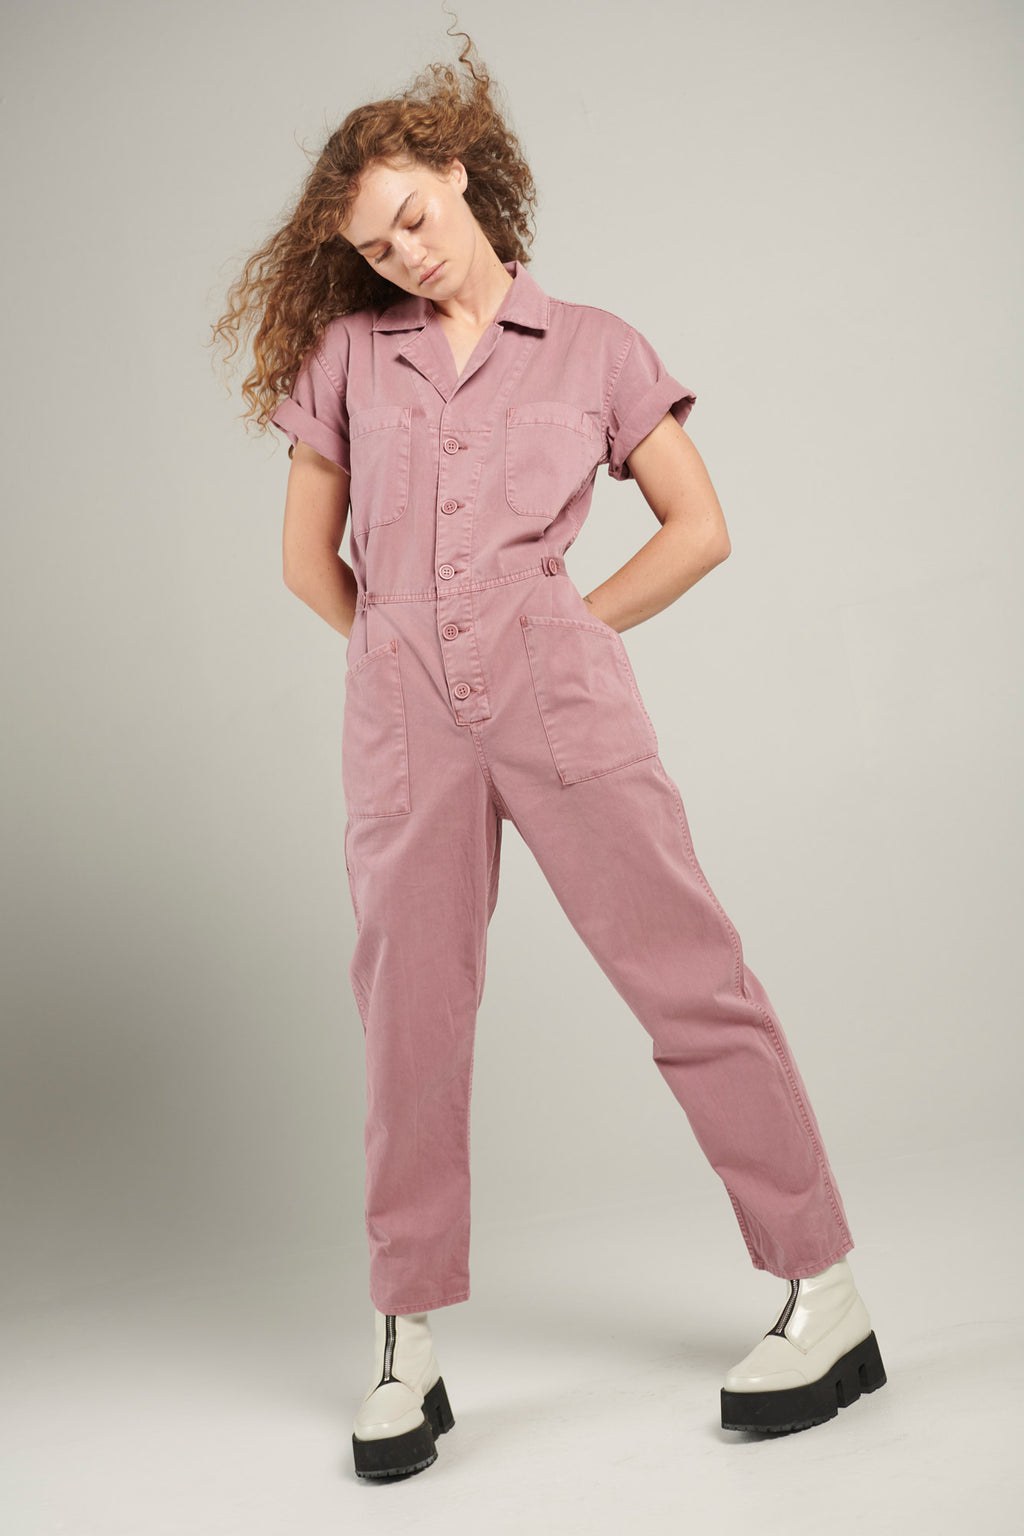 Grover Short Sleeve Field Suit - Moss Rose